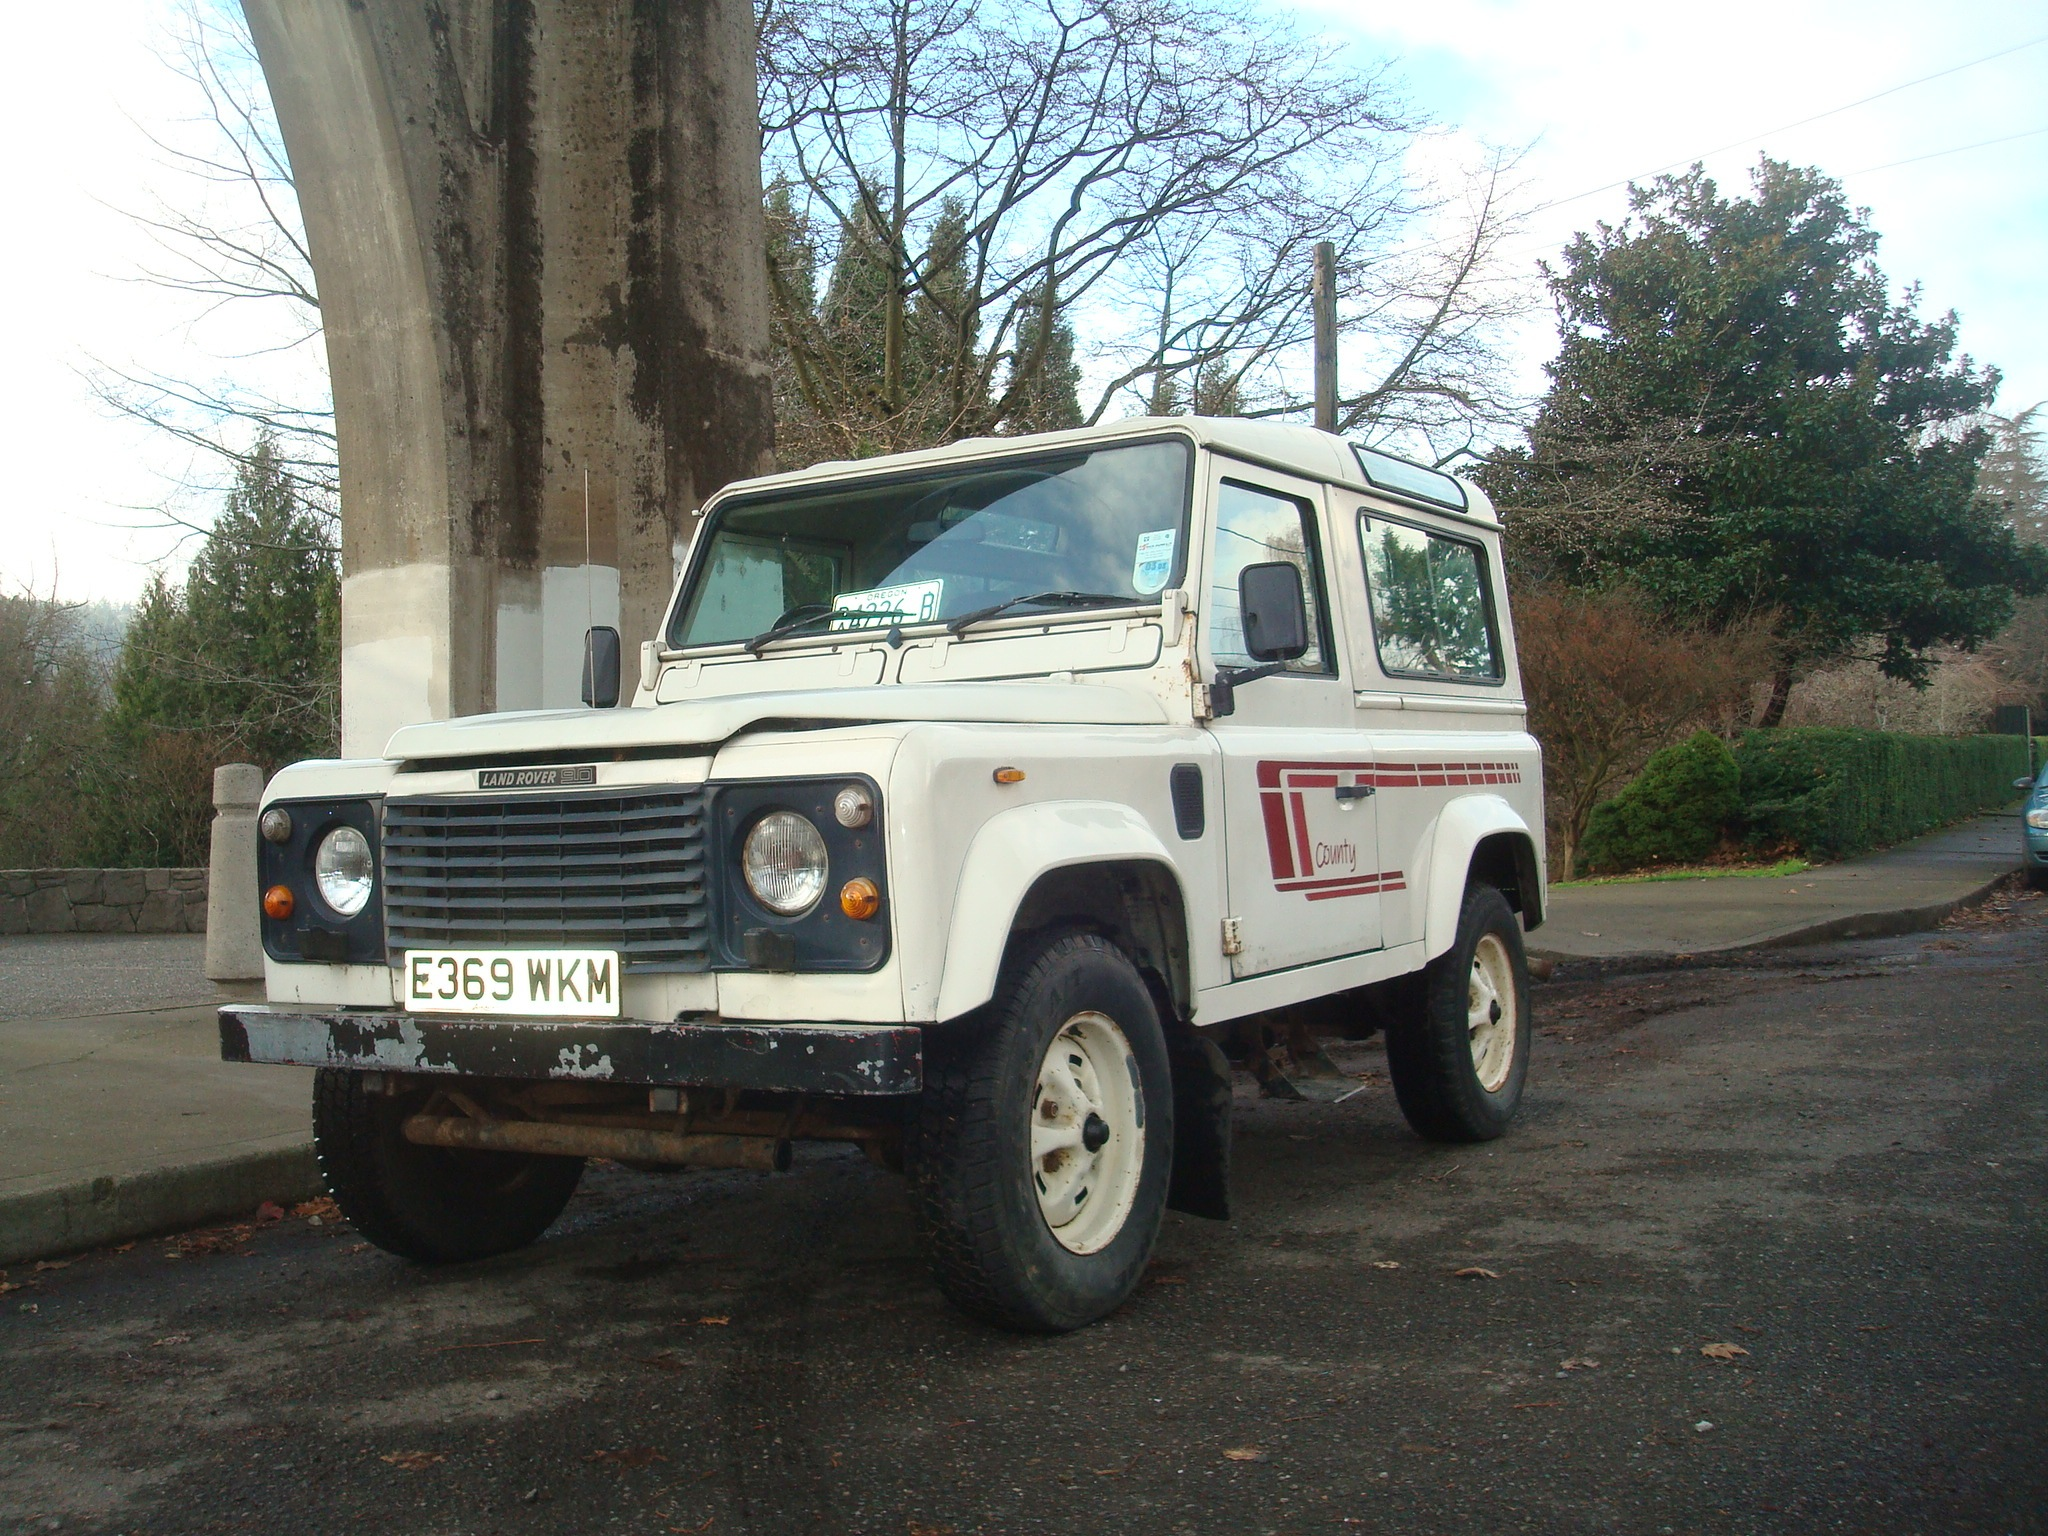 1988 Land Rover Defender 90 turbo sel CSW